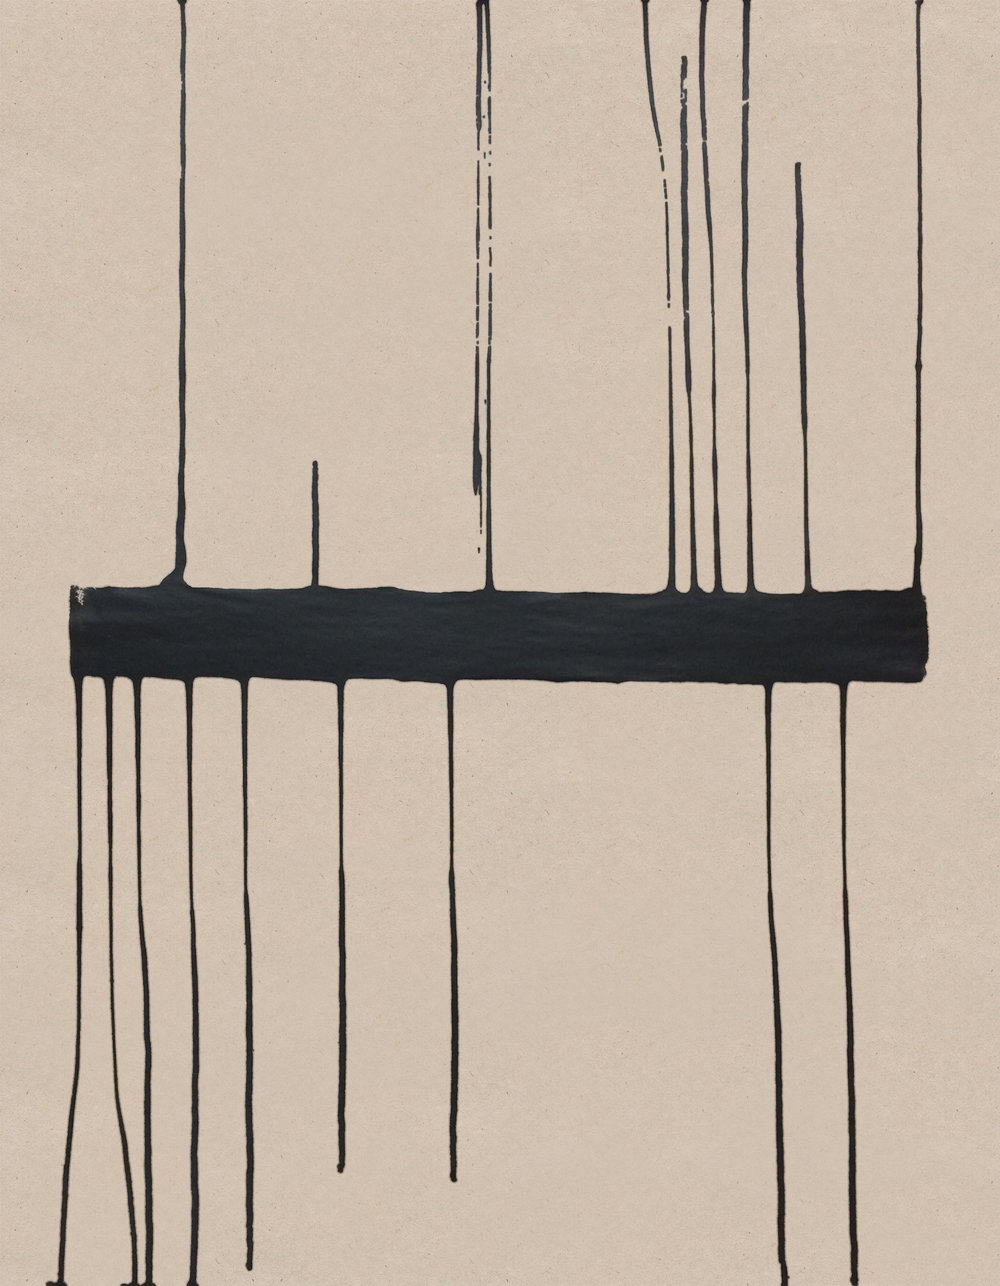 Two Black Lines, Diego Berjon